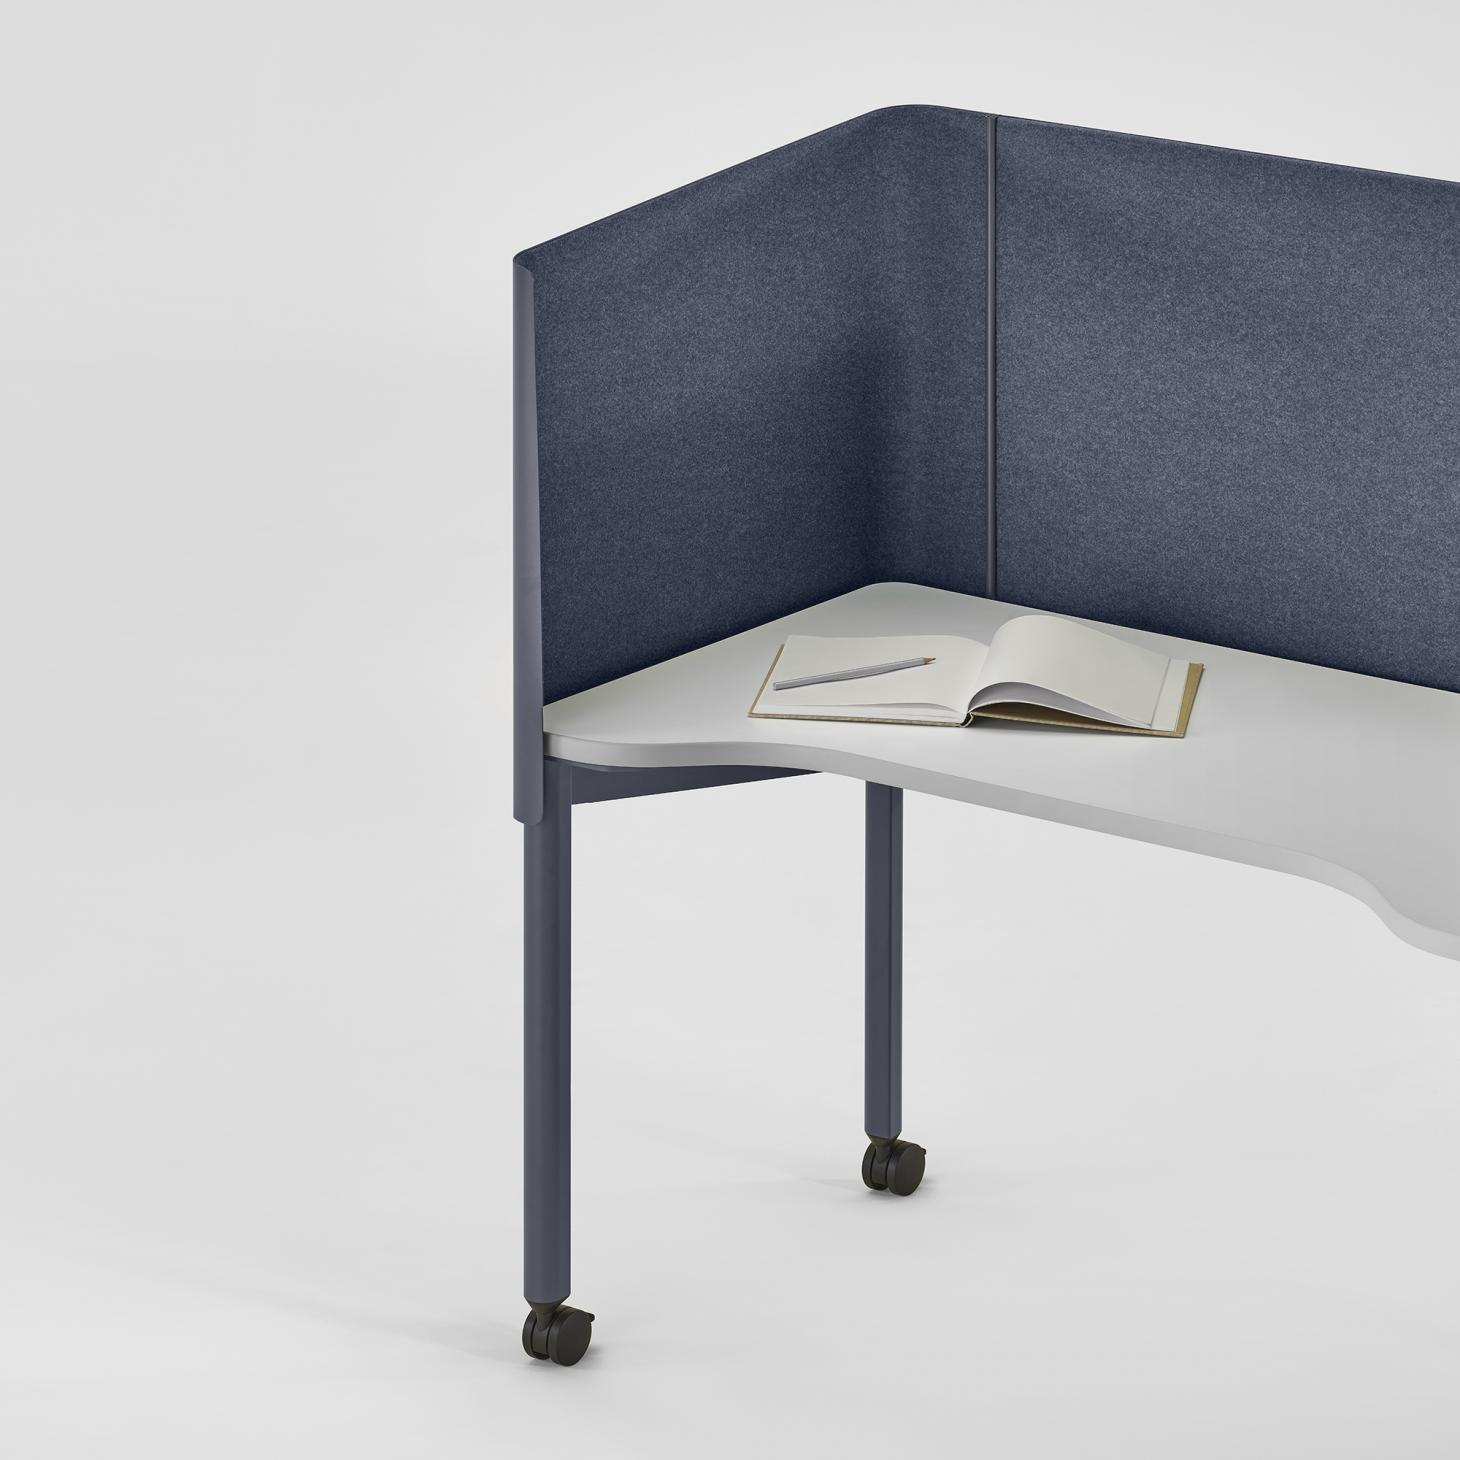 OE1 office furniture collection by Industrial Facility for Herman Miller